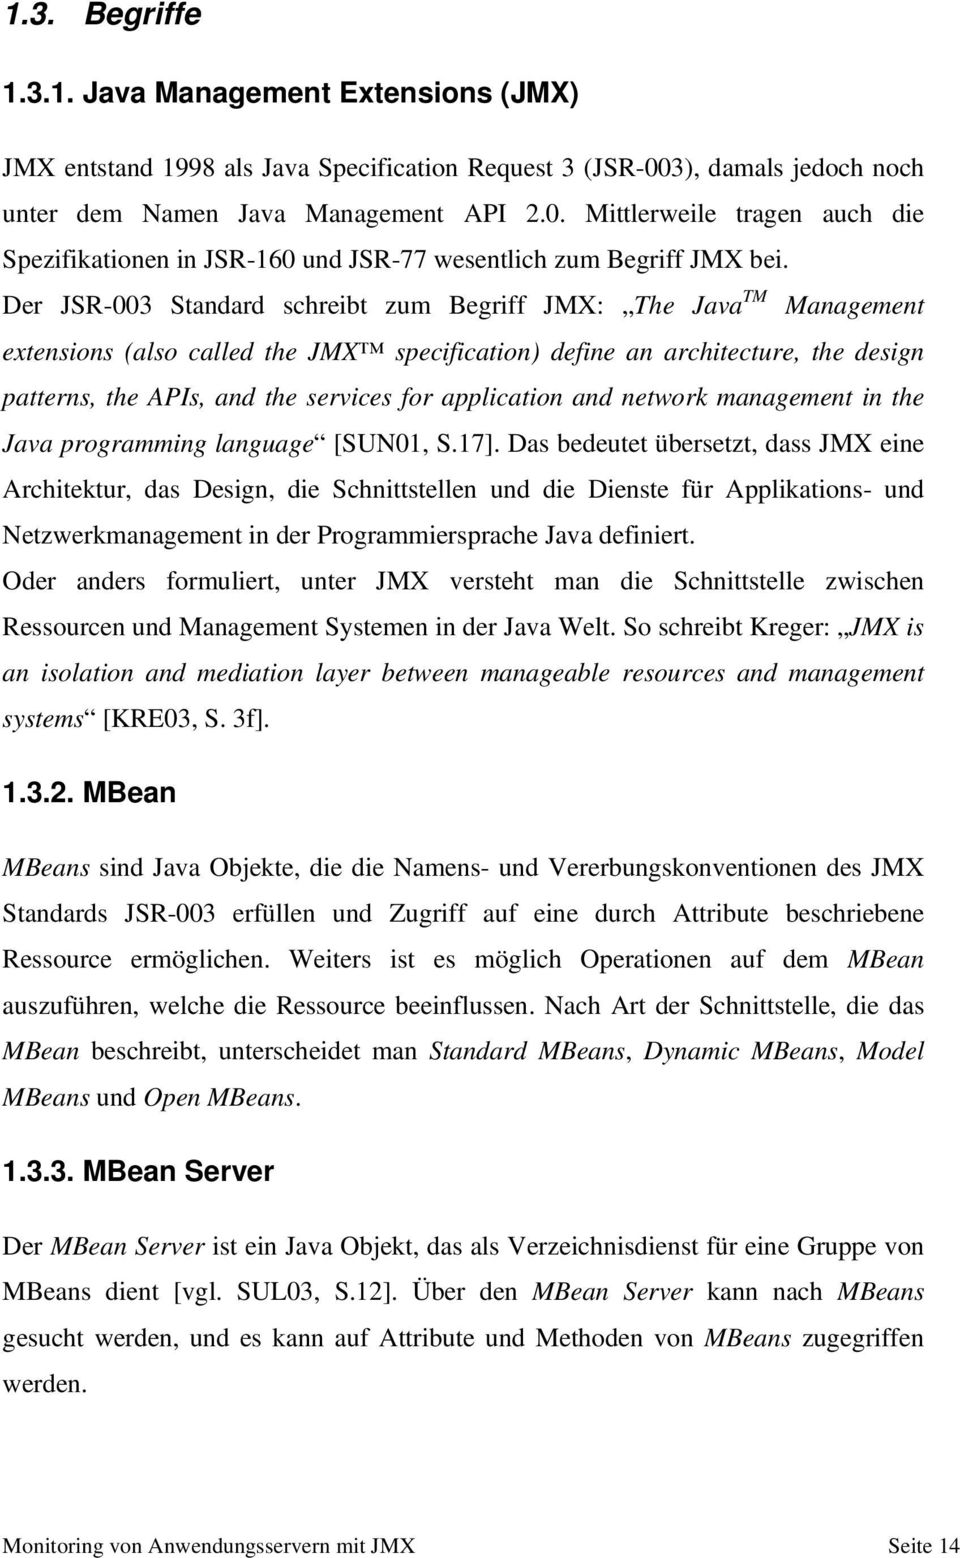 Der JSR-003 Standard schreibt zum Begriff JMX: The Java TM Management extensions (also called the JMX specification) define an architecture, the design patterns, the APIs, and the services for